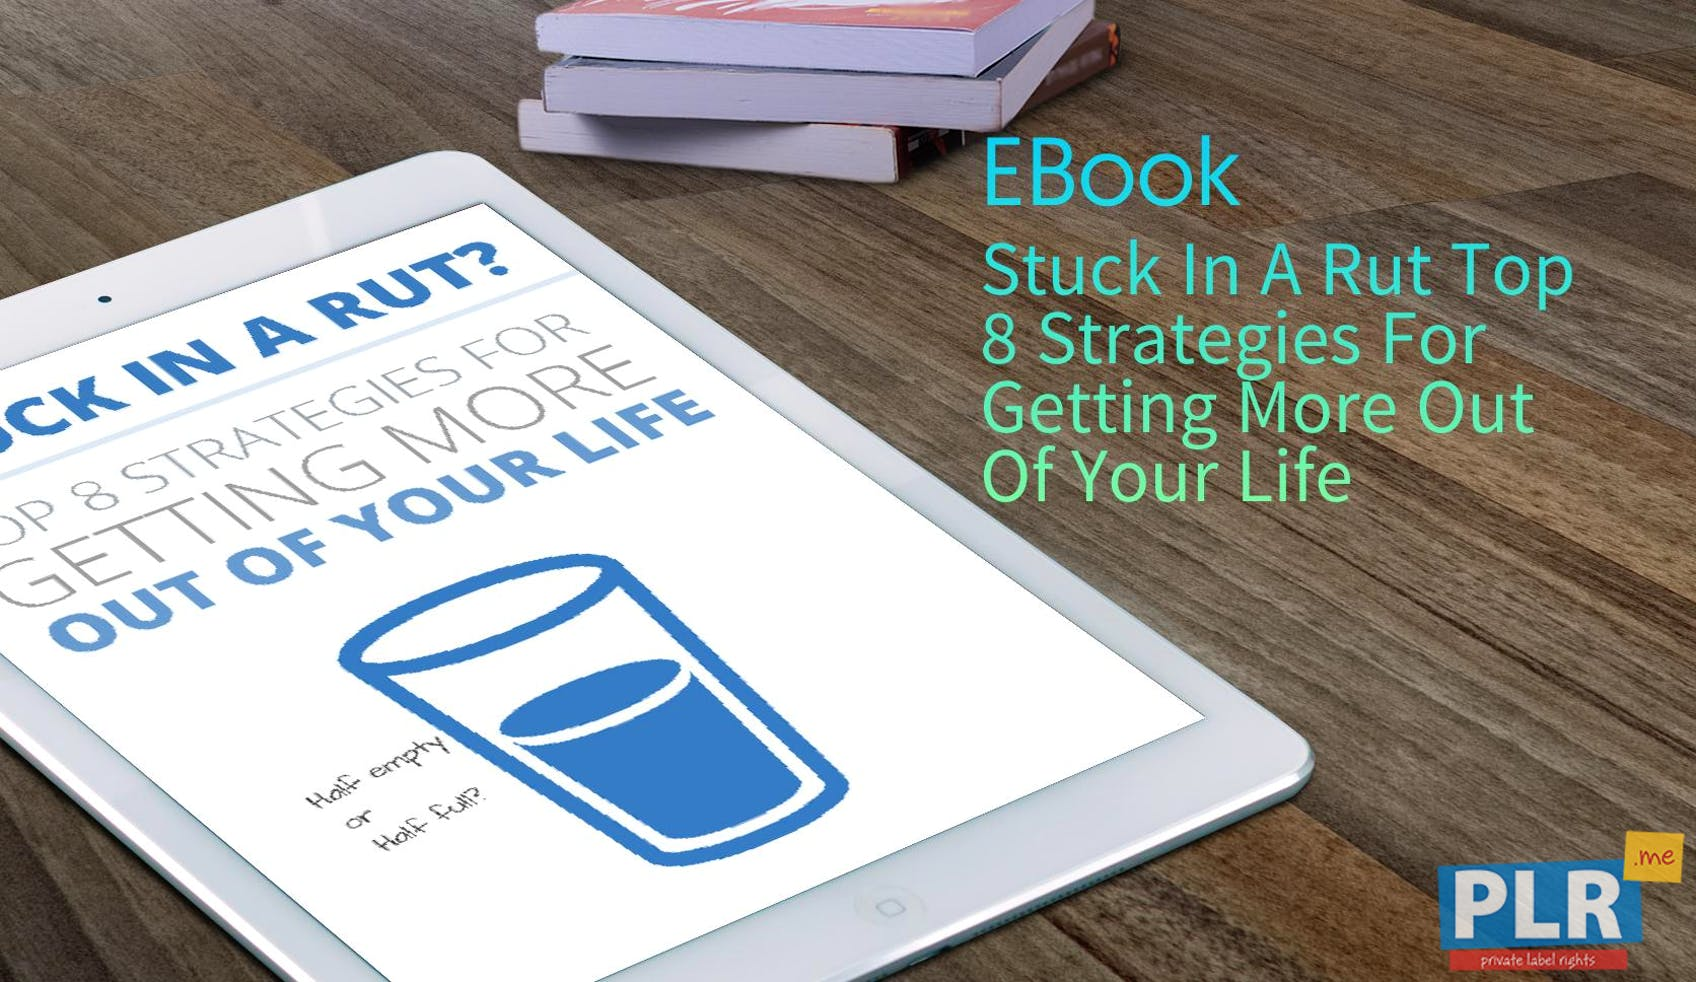 Stuck In A Rut Top 8 Strategies For Getting More Out Of Your Life